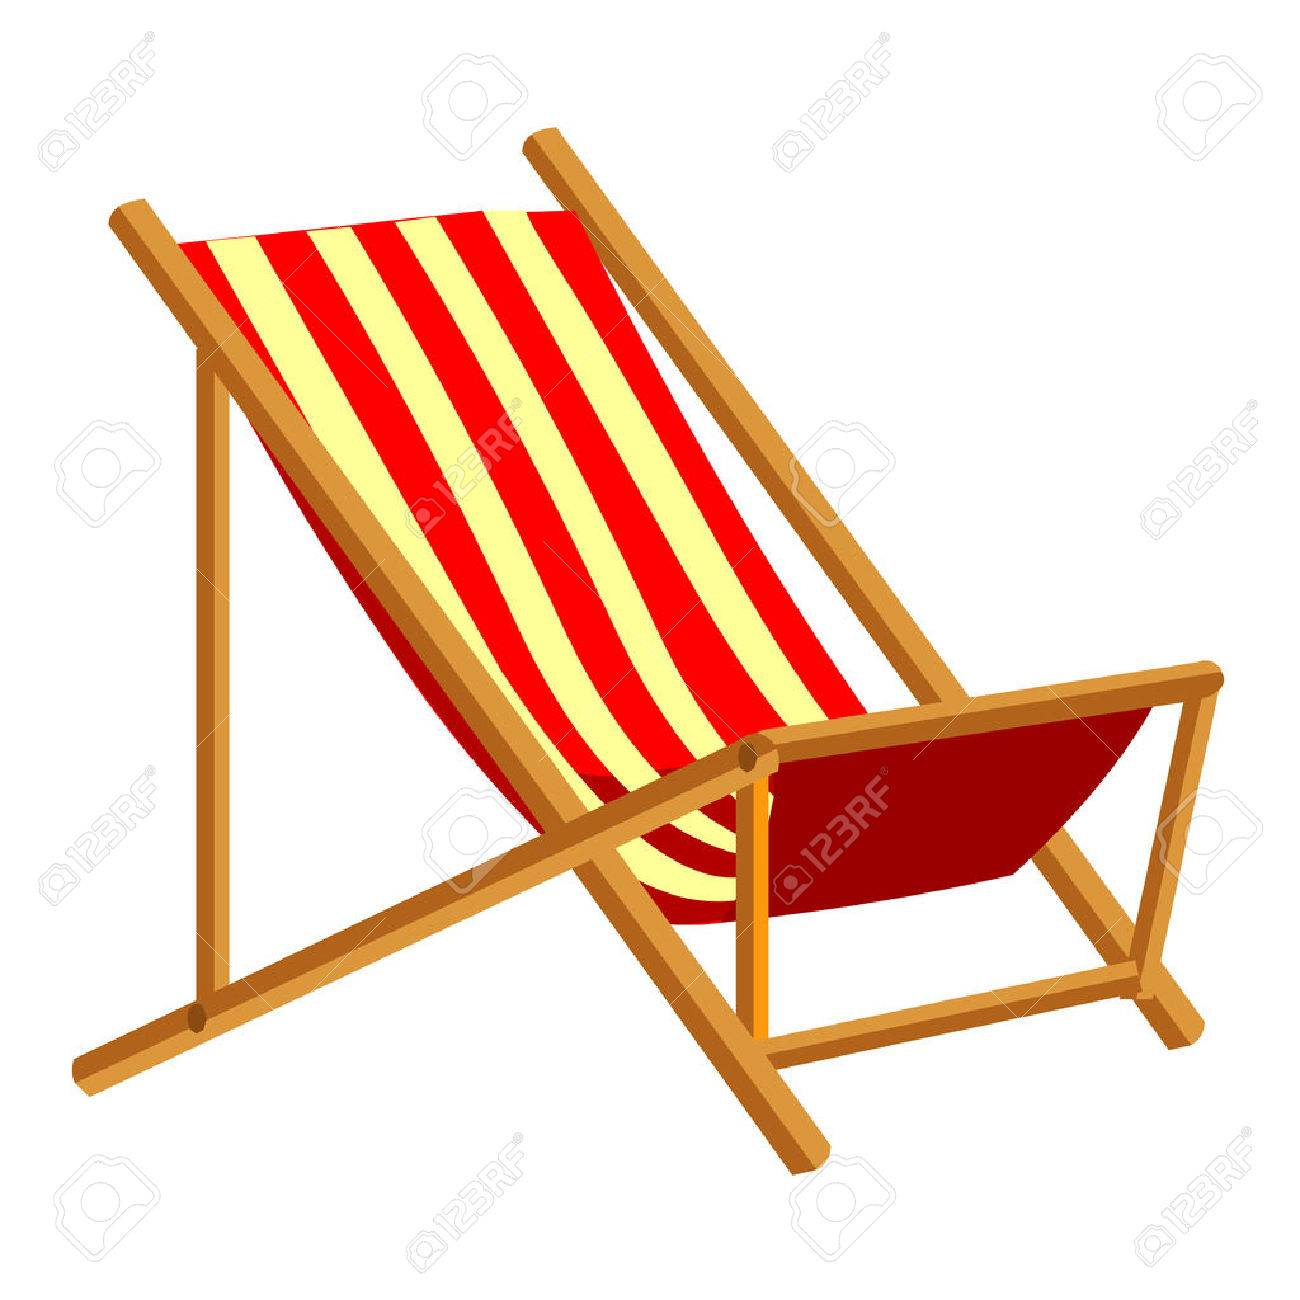 Beach Chair Vector beach chair isolated illustration on white background royalty free